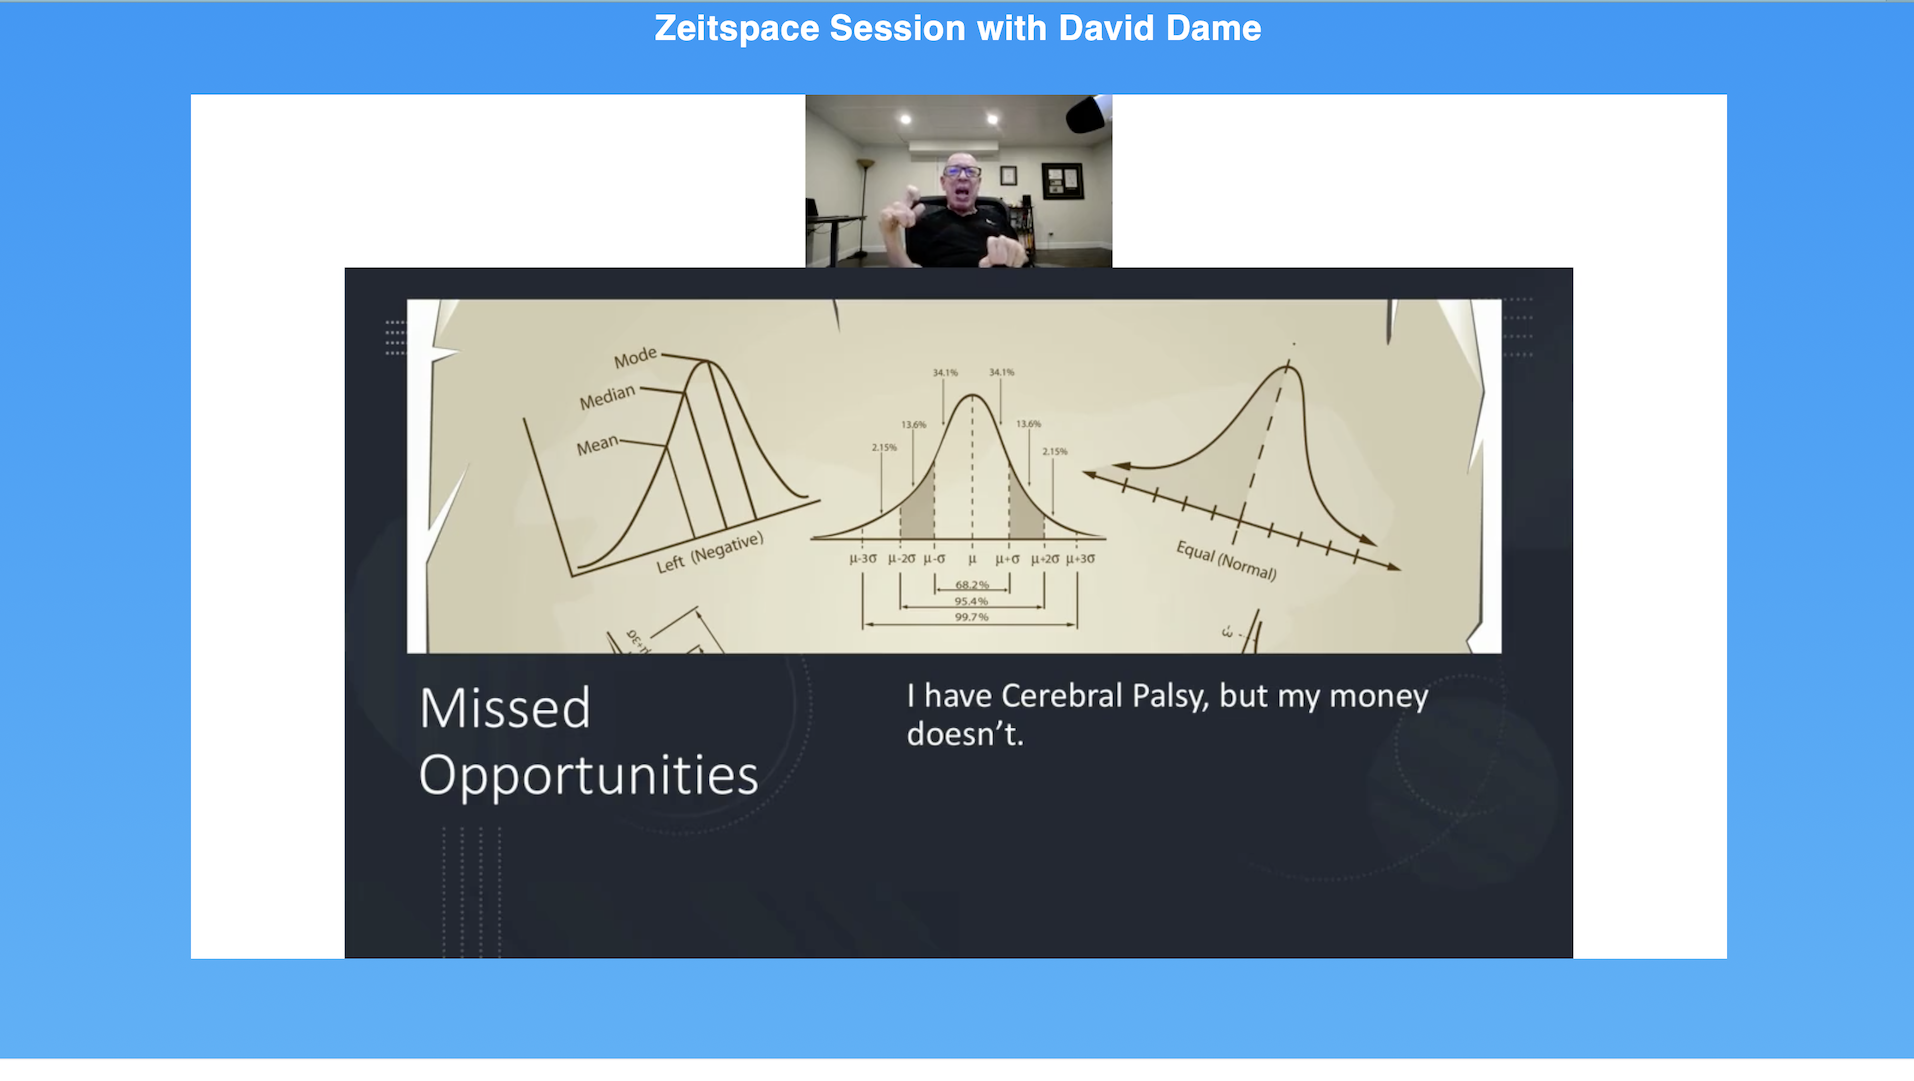 David Dame appears by video for a Zeitspace Session on product innovation. Below him is a slide that has three graphs with confidence intervals. Text: Missed opportunities. I have cerebral palsy but my money doesn't.